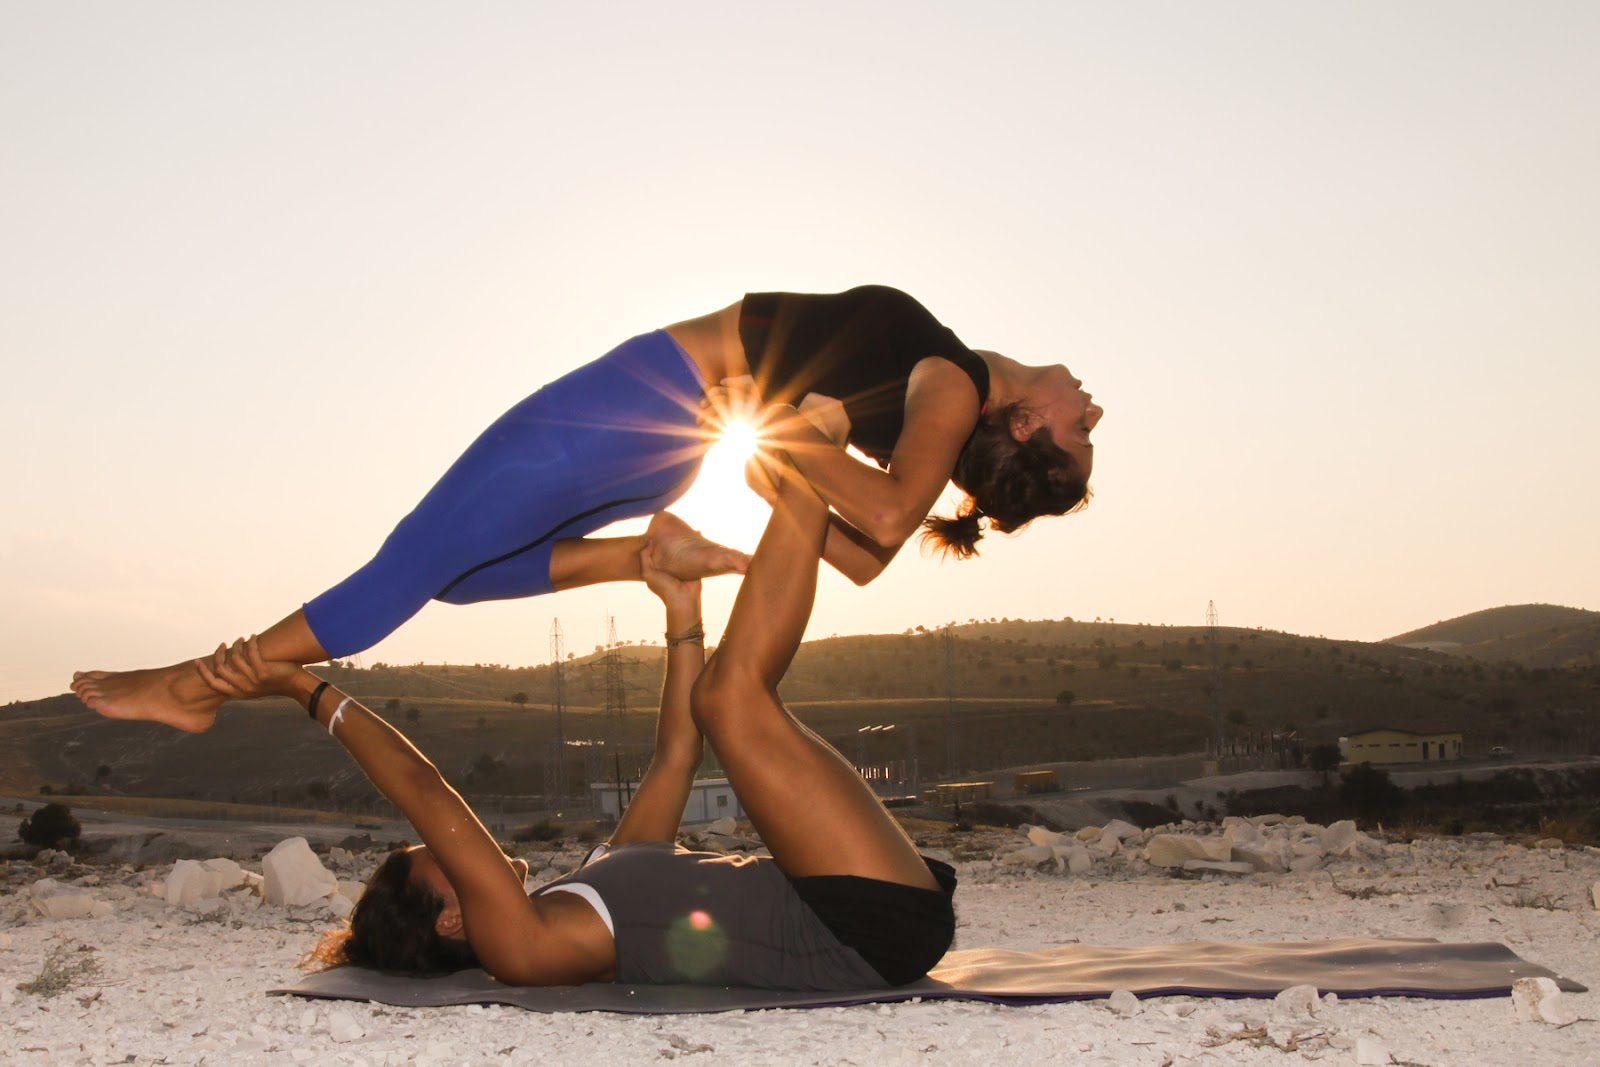 Dont Let The Acroyoga Couple Poses Youve Seen Scare You Weve All Those Instagram Pictures Amazing Feats Of Yoga Spreads Starring Beautiful